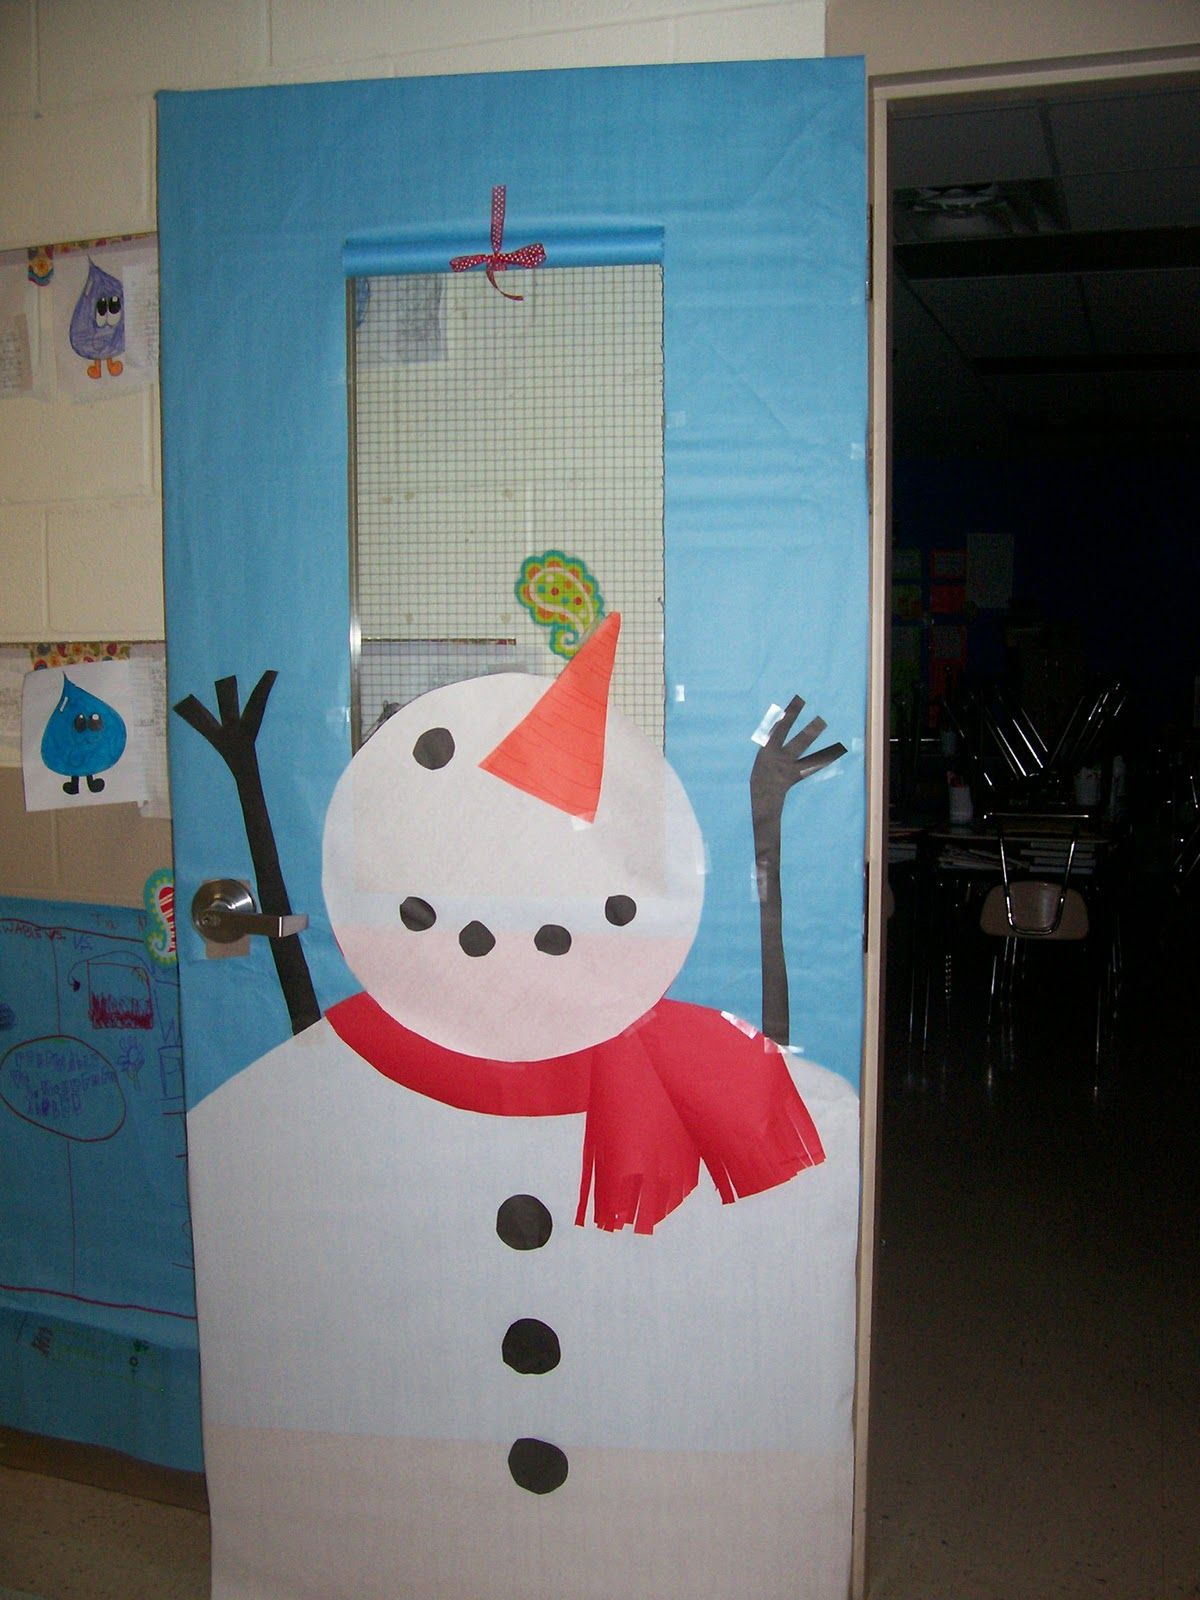 Snowman door design i know i know what does this have to do with